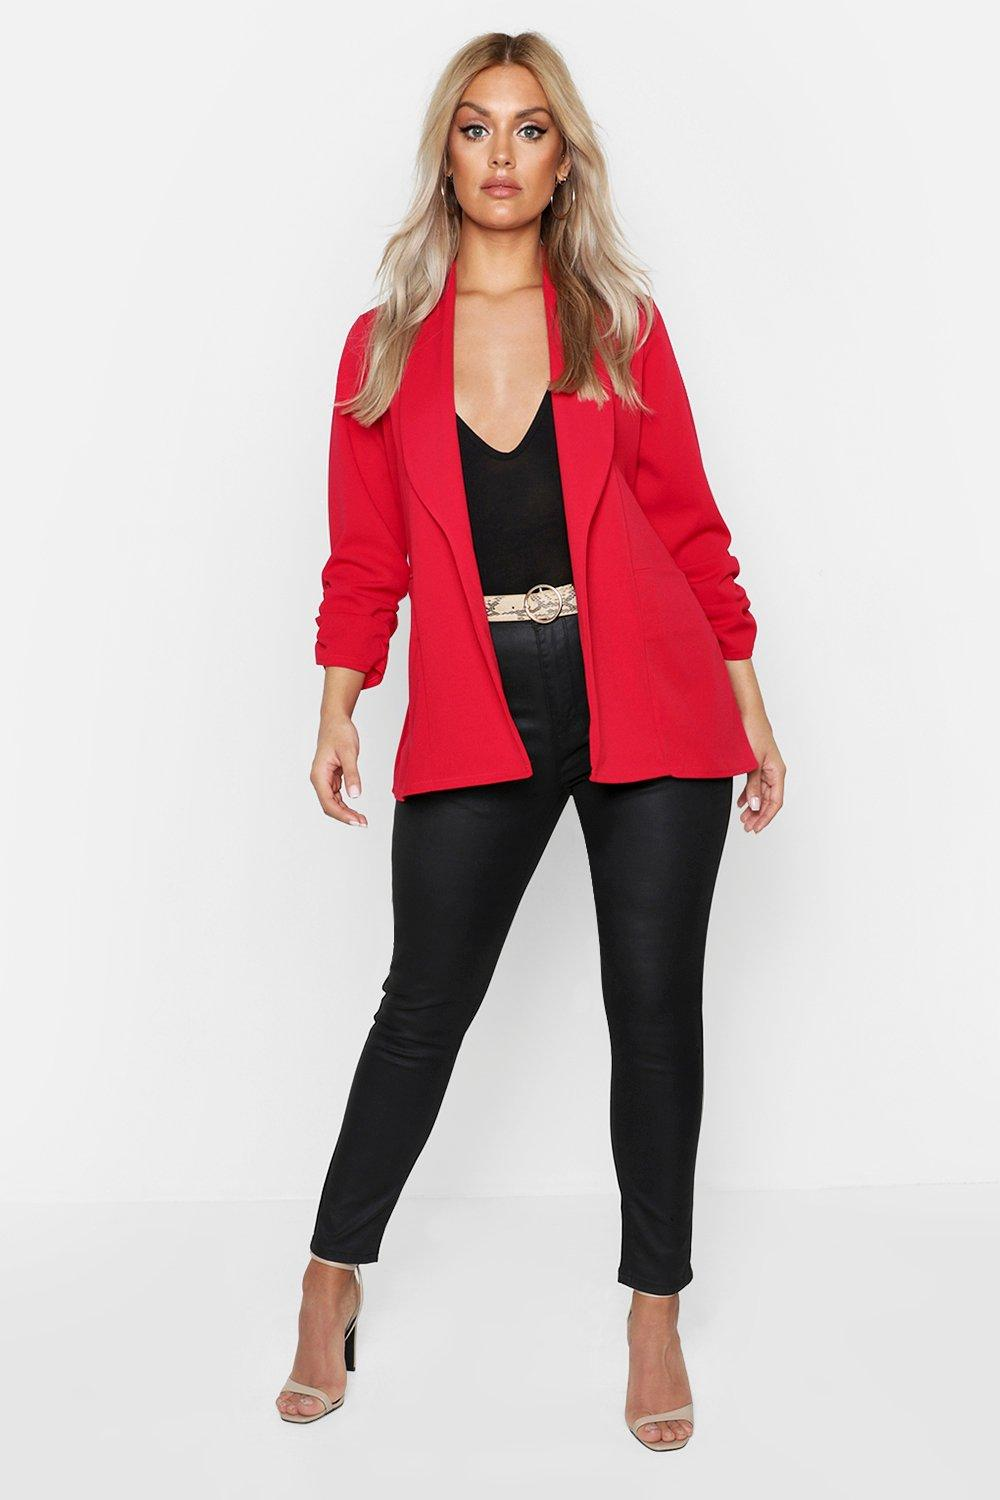 boohoo Womens Plus Lapel Detail Ruched Sleeve Blazer - Red - 16, Red